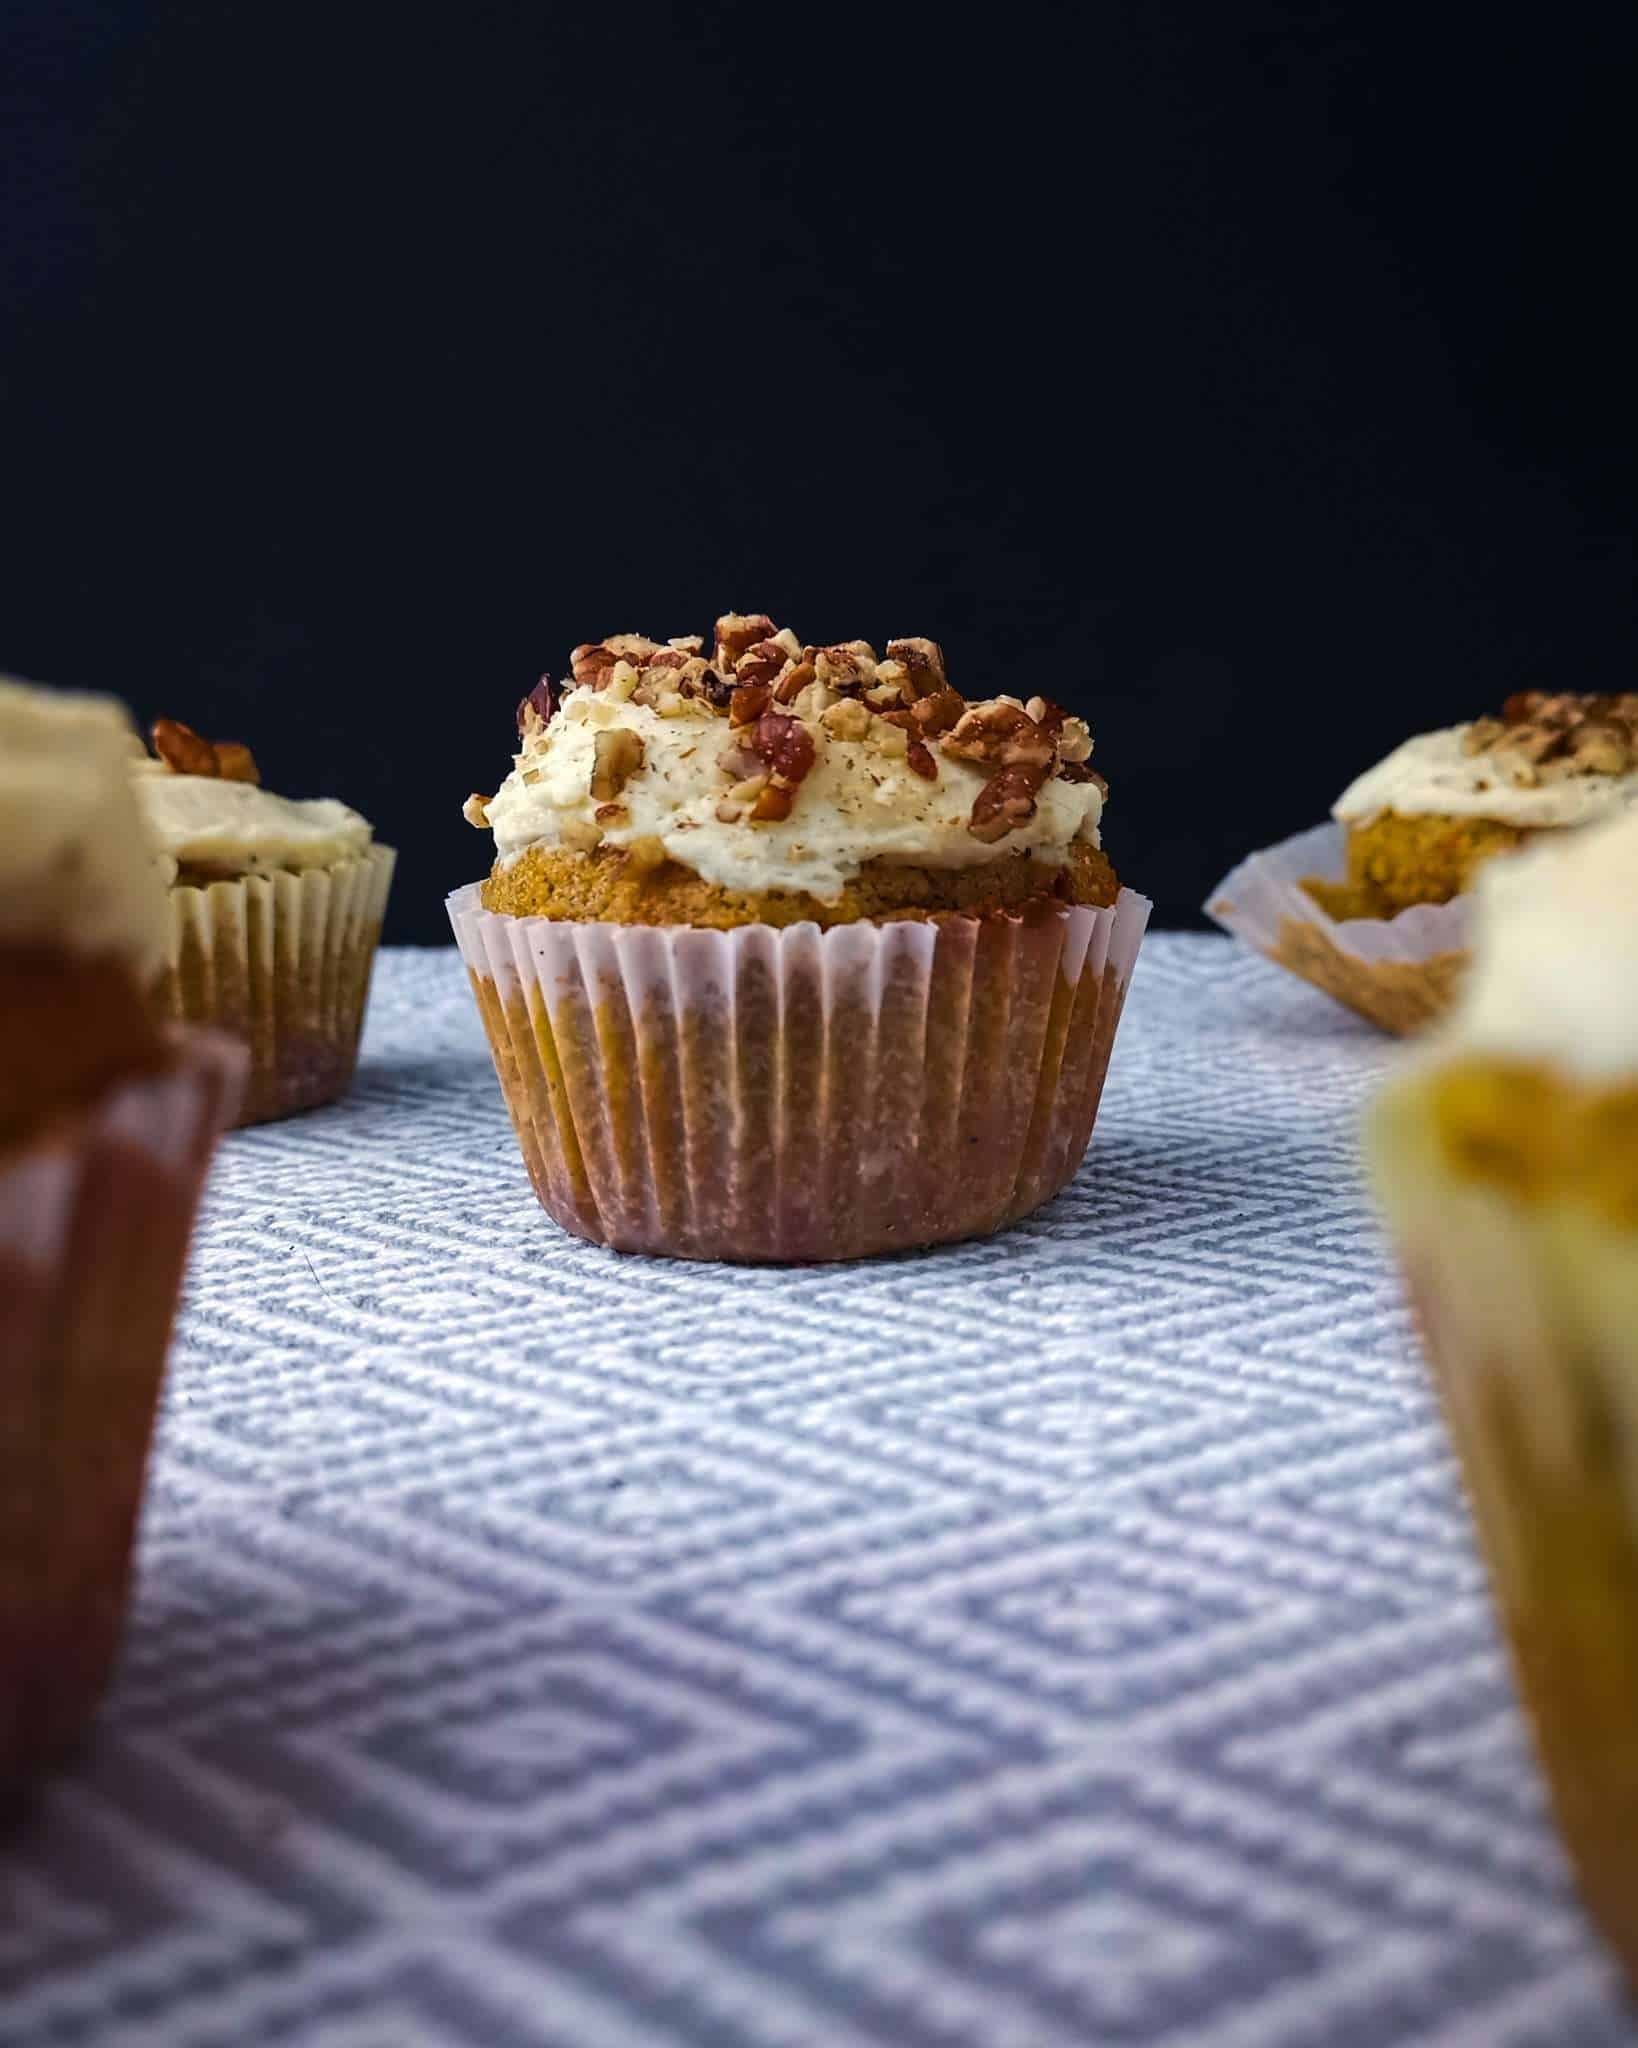 Low carb carrot cake cupcake with cream cheese frosting